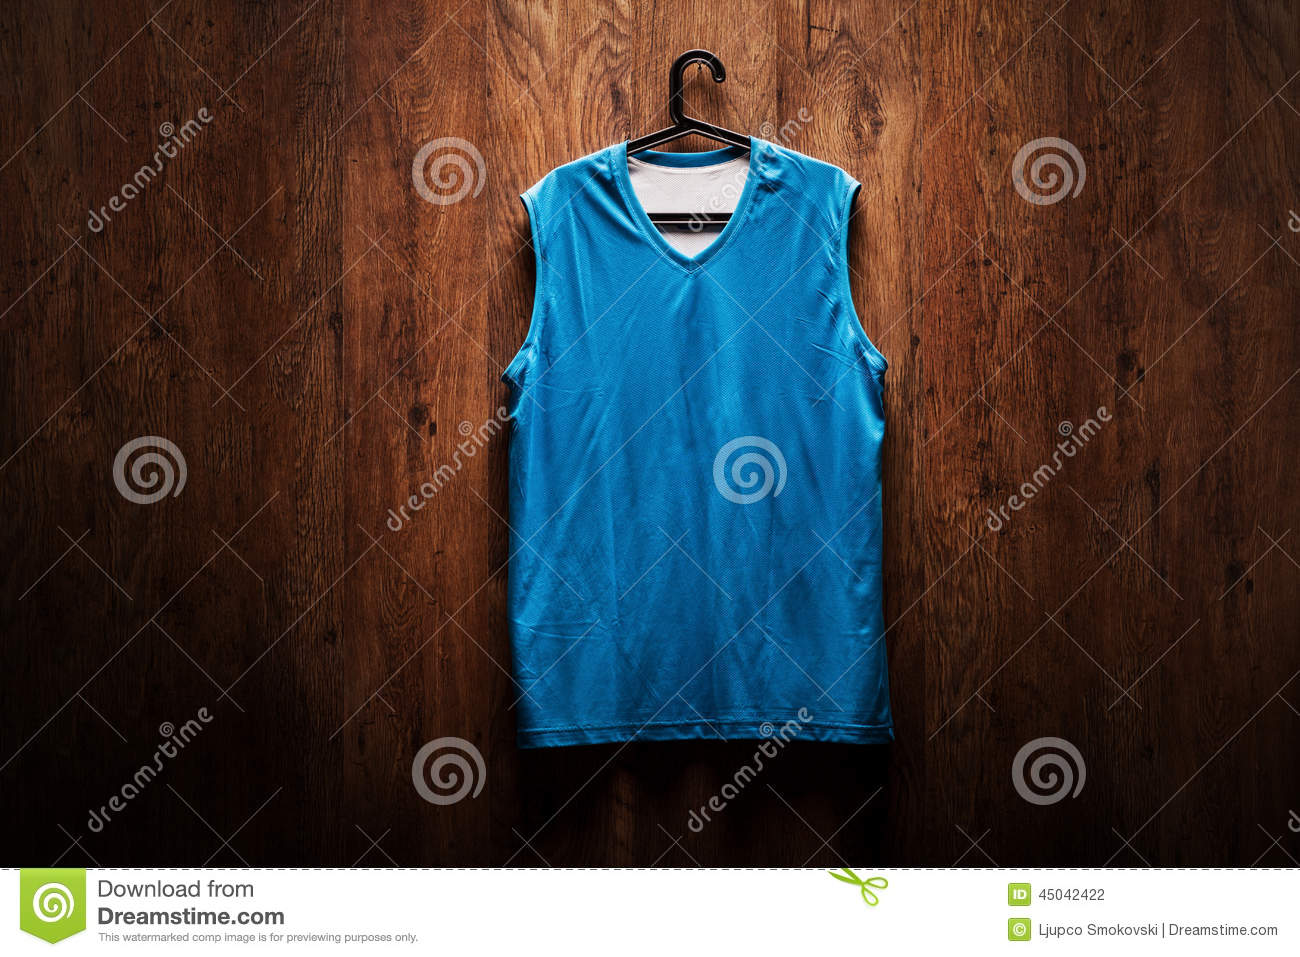 blue basketball jersey hanging on a wooden wall stock photo image of shirt locker 45042422. Black Bedroom Furniture Sets. Home Design Ideas